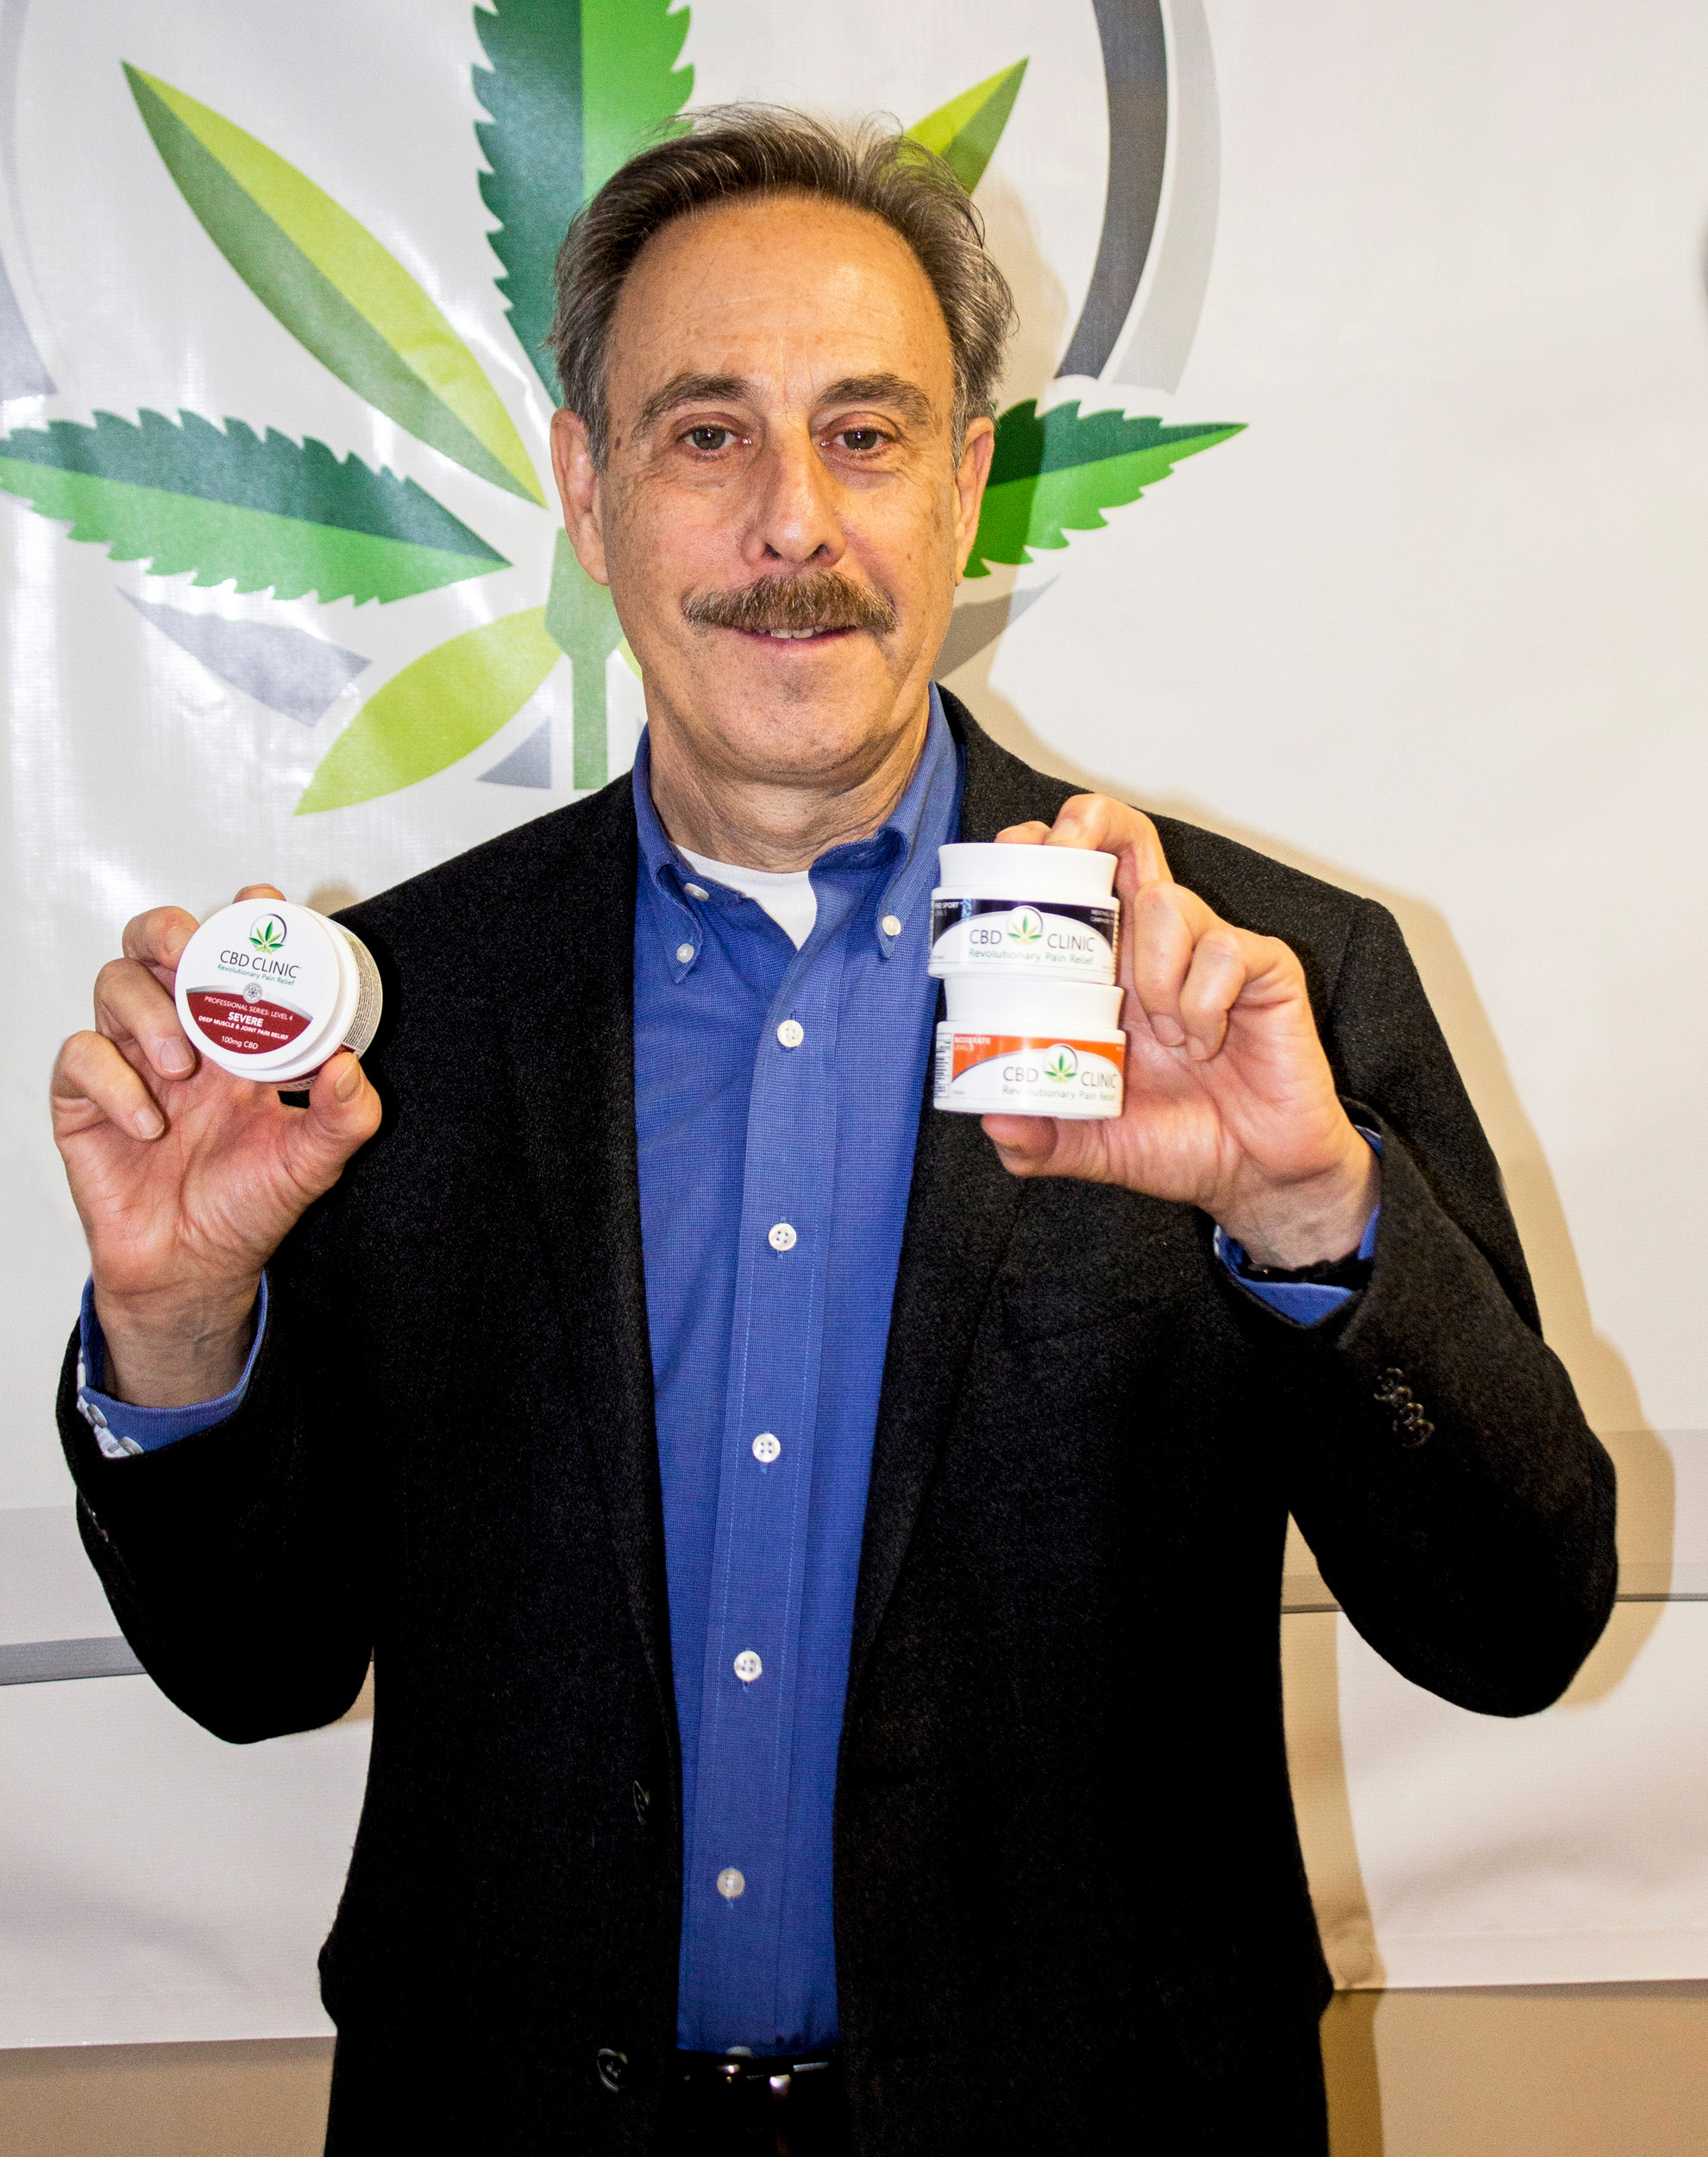 David Goldsmith, whose firm, CBD Clinic, has developed a new, non-prescription topical product to help relieve chronic pain, using CBD extract from marijuana, proudly displaying jars of his new product.